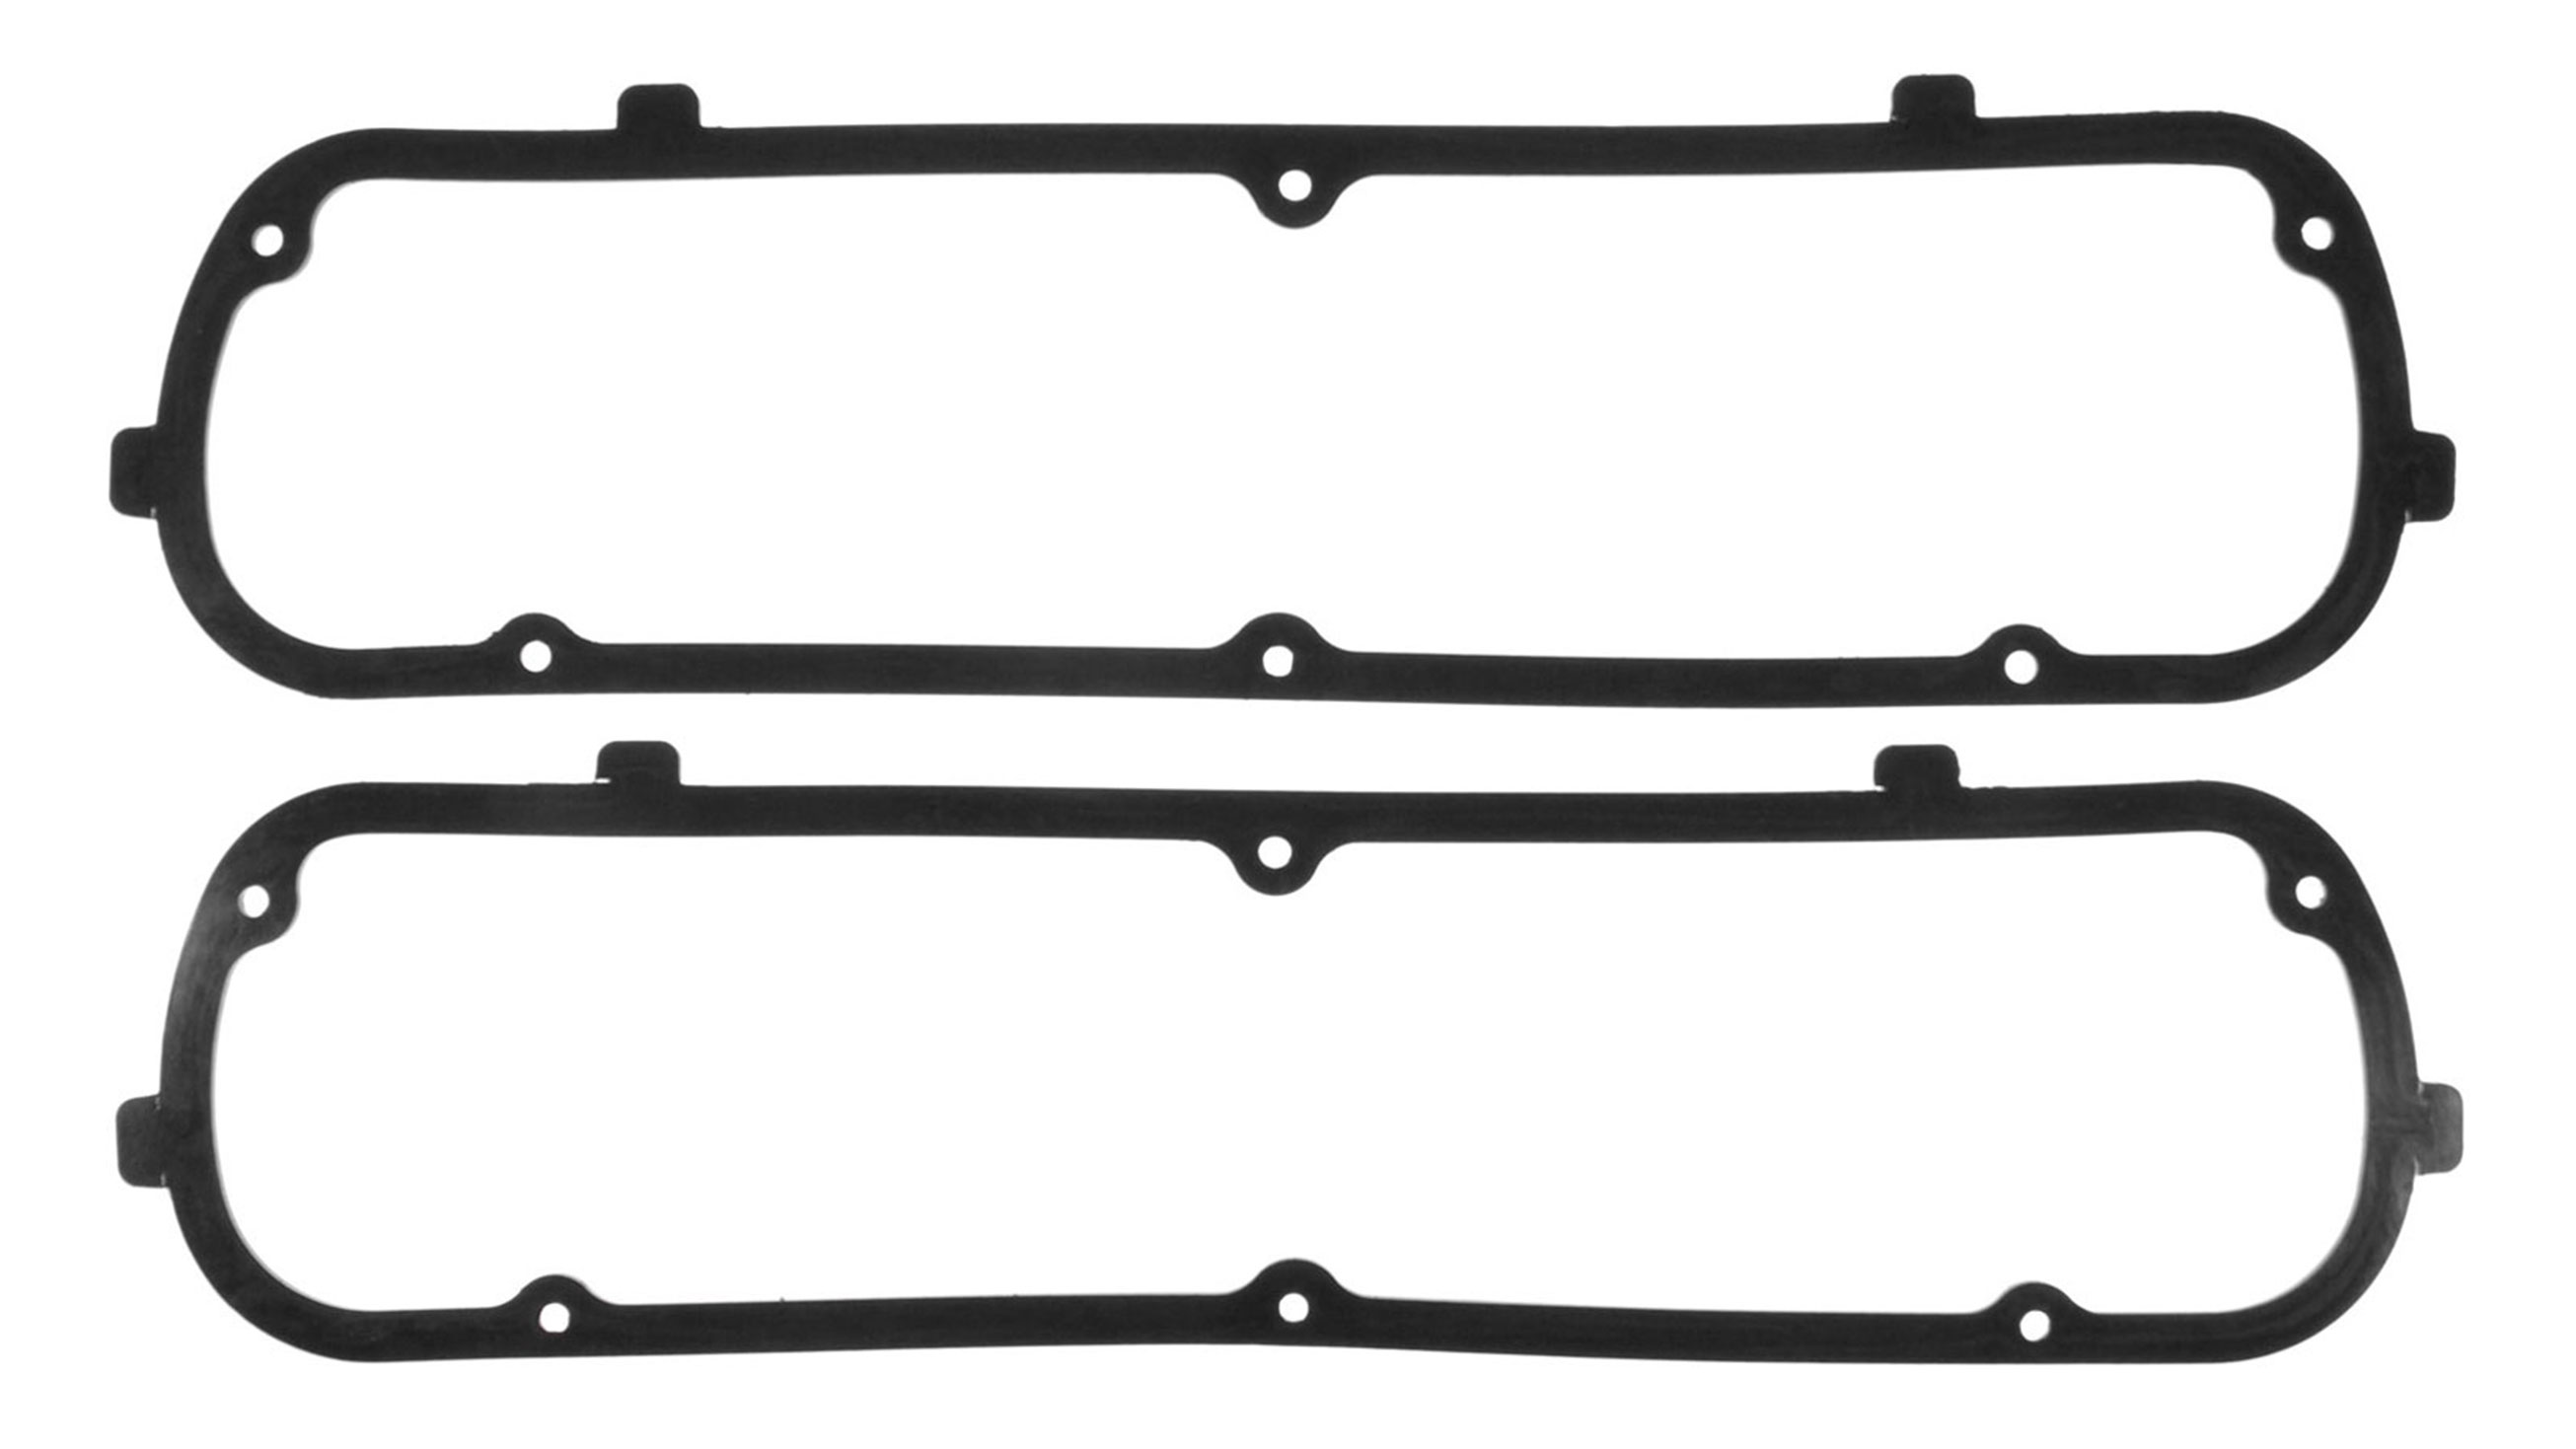 Valve Cover Gaskets, RUBBER, 289/302/351w V8 (per pair)